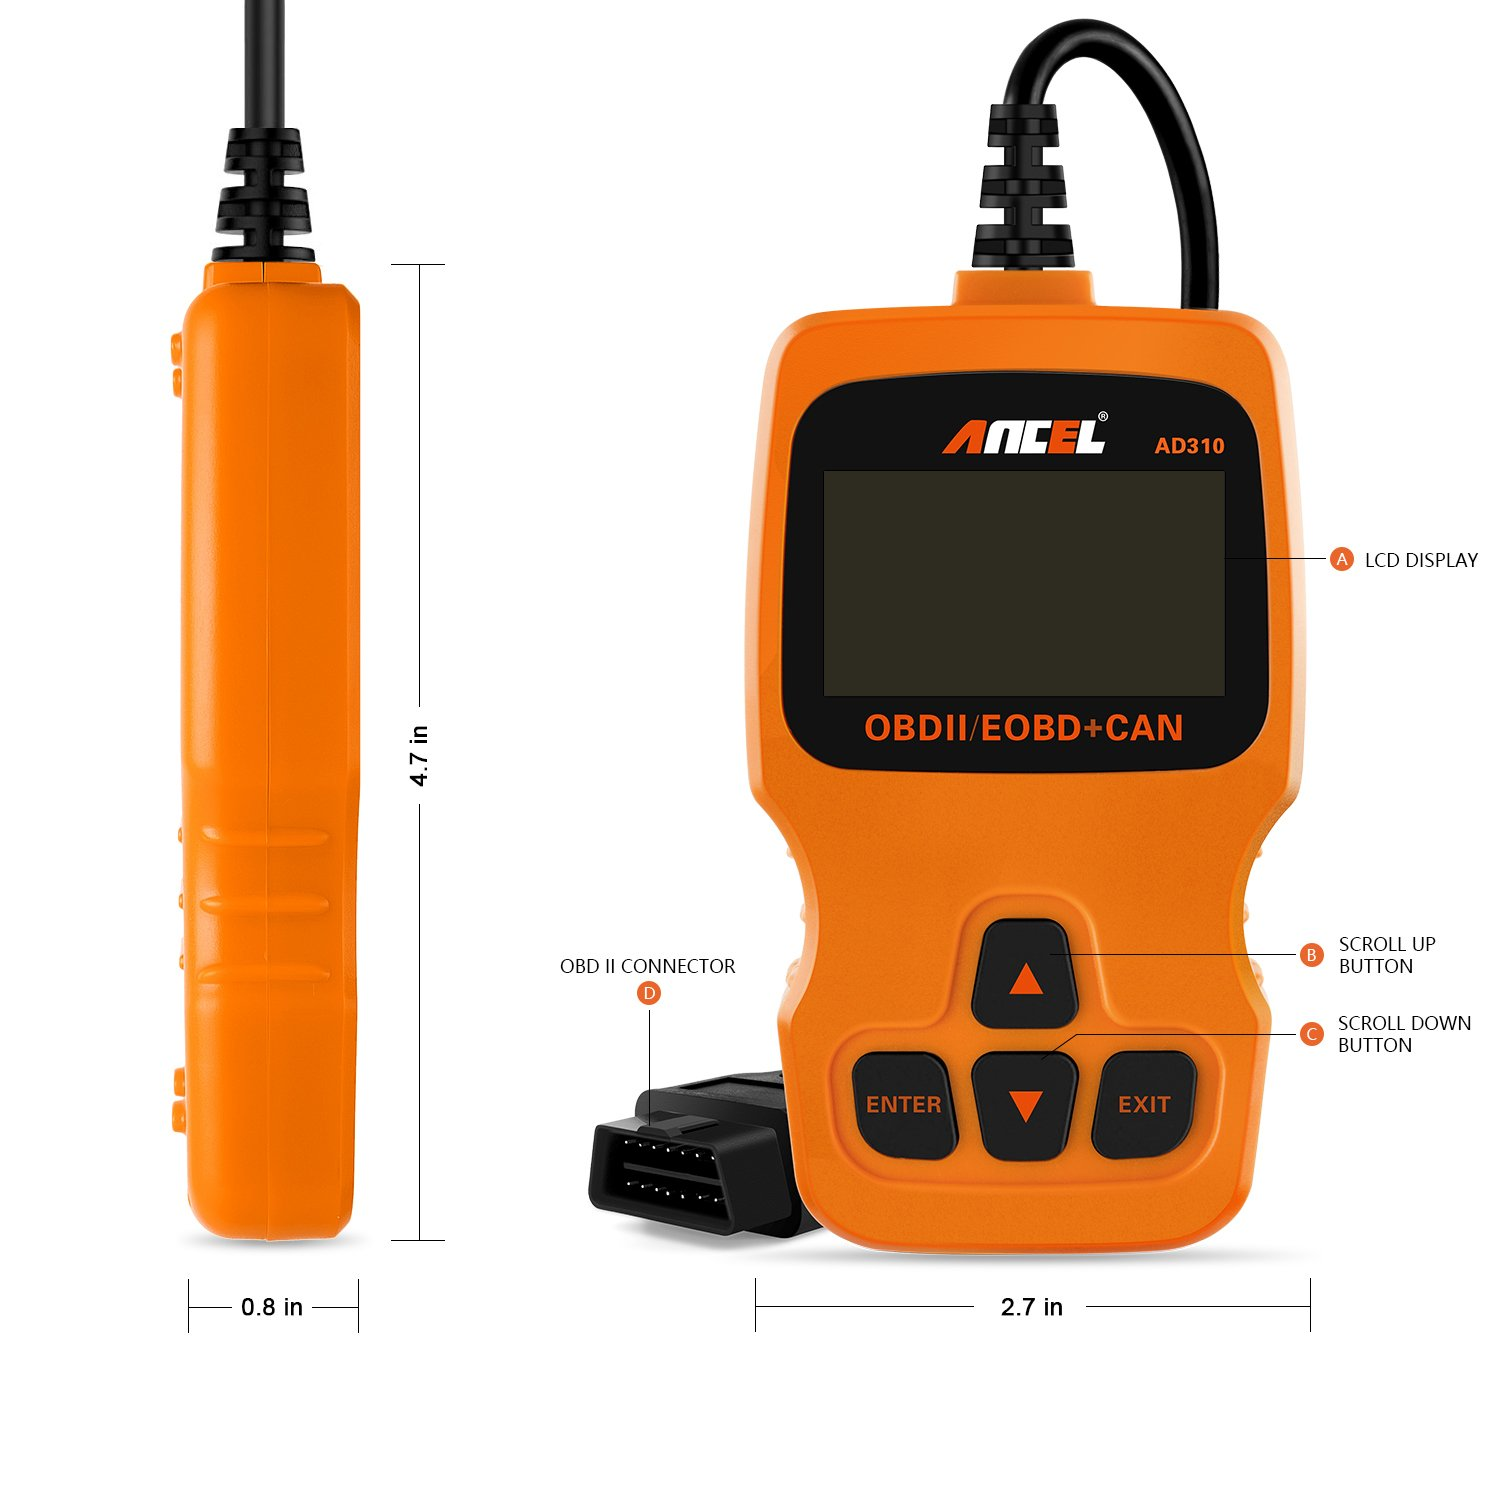 ANCEL AD310 Diagnostic Scan Tool - Orange